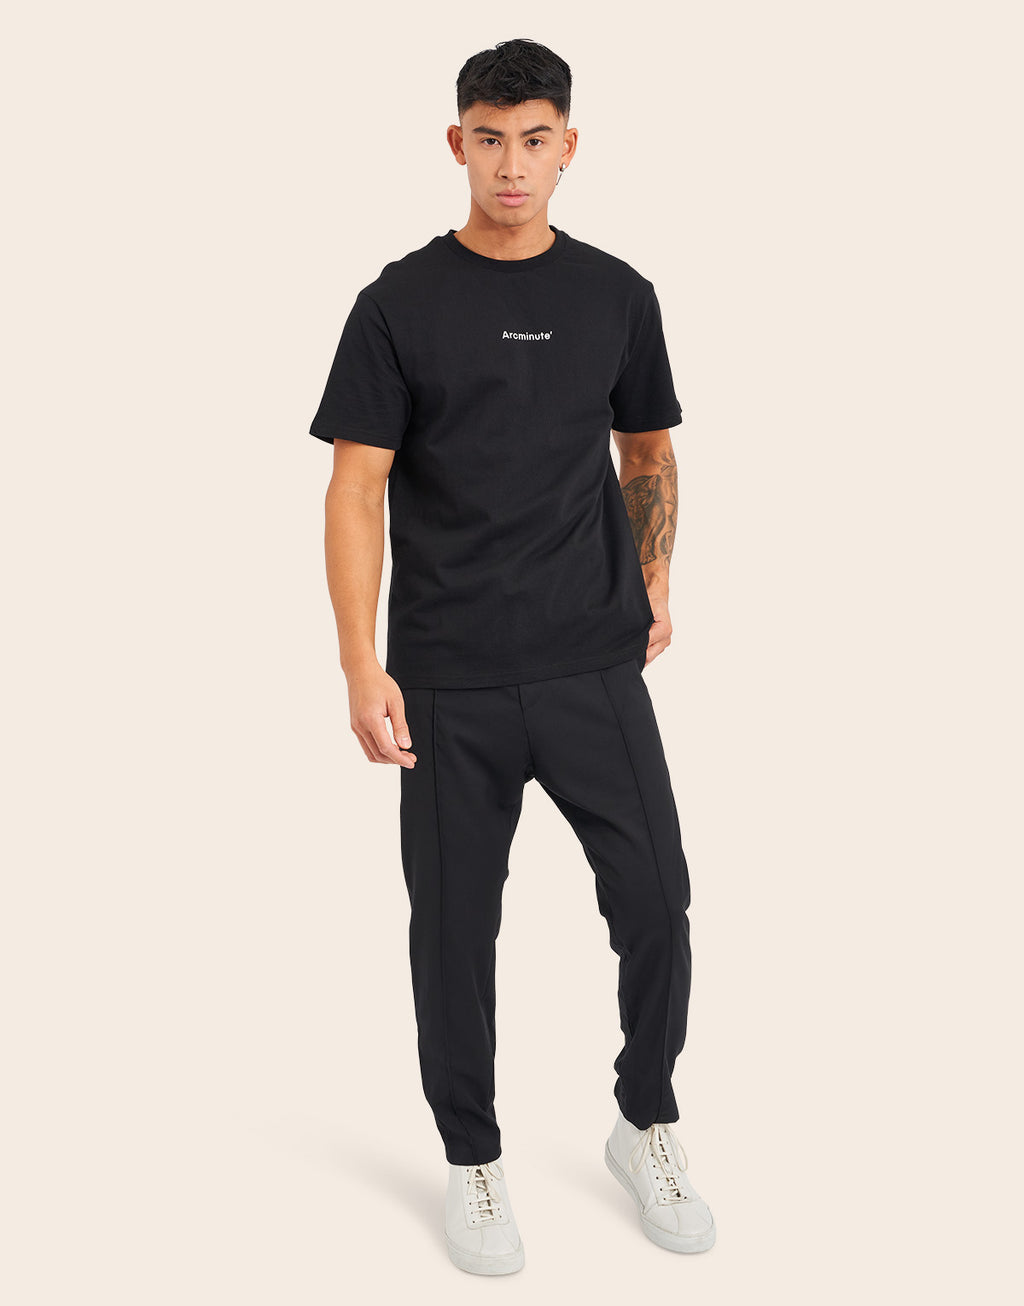 Thomas T-Shirt Black